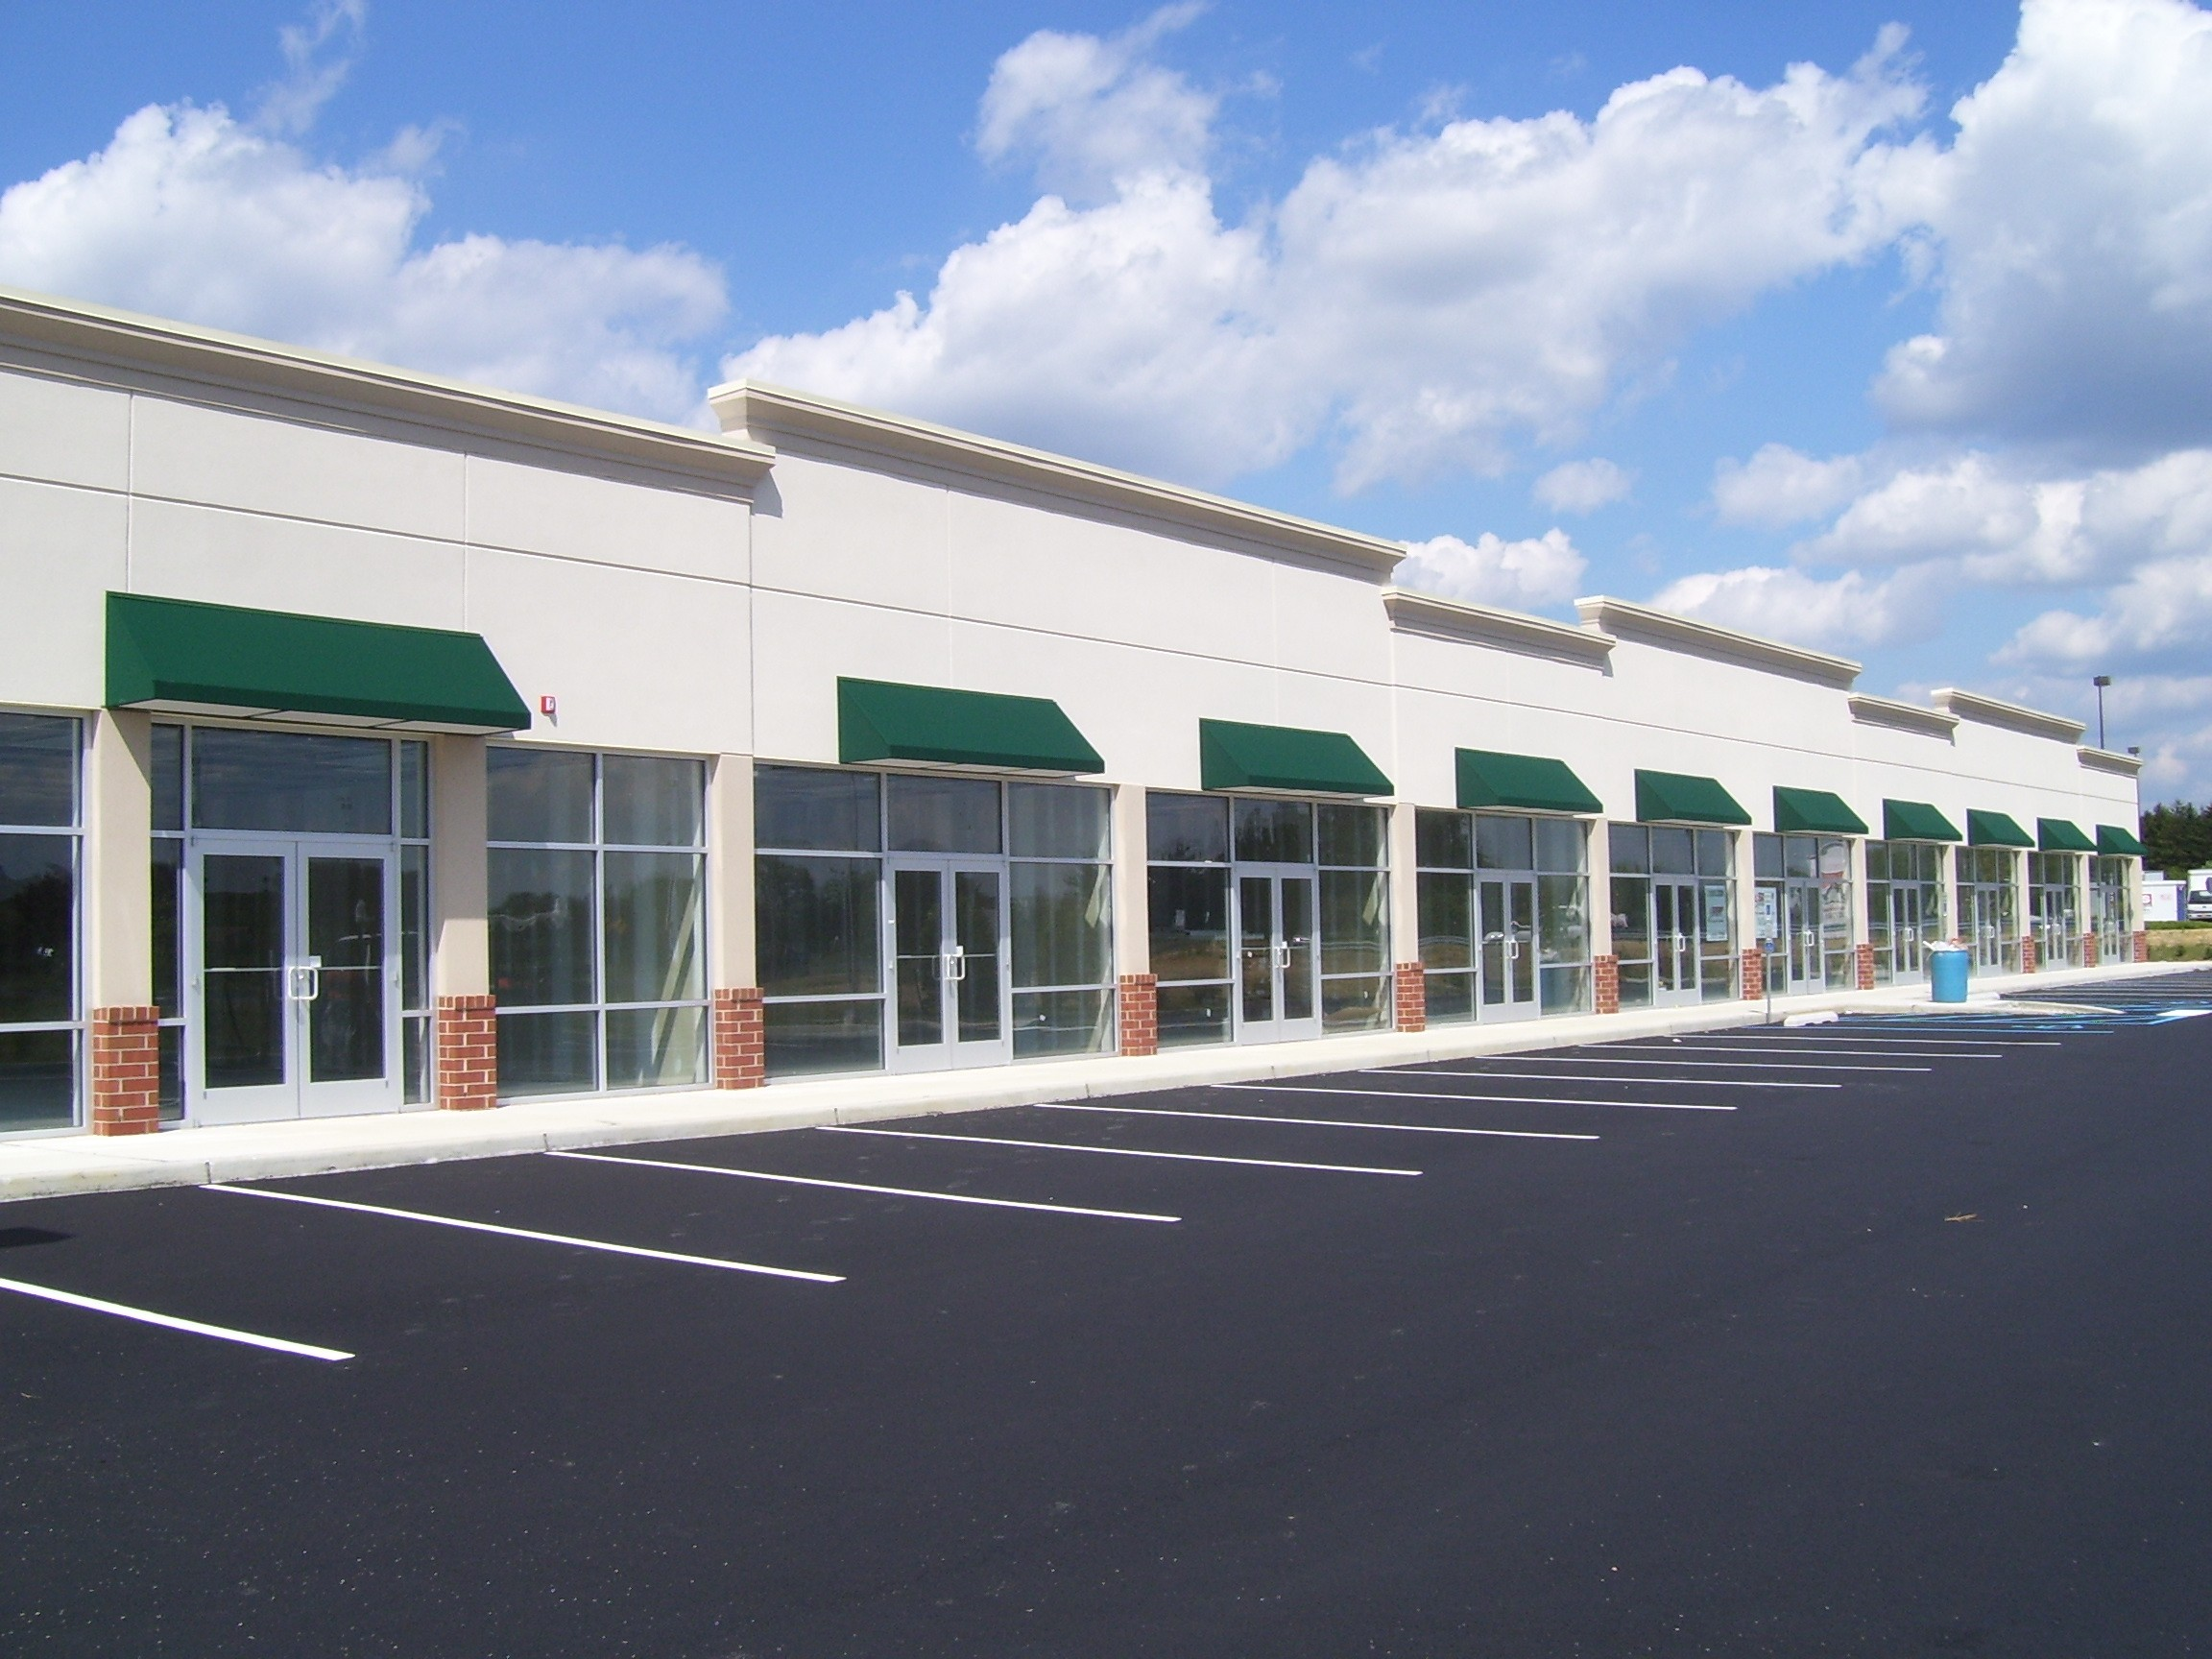 Strip mall with green awnings